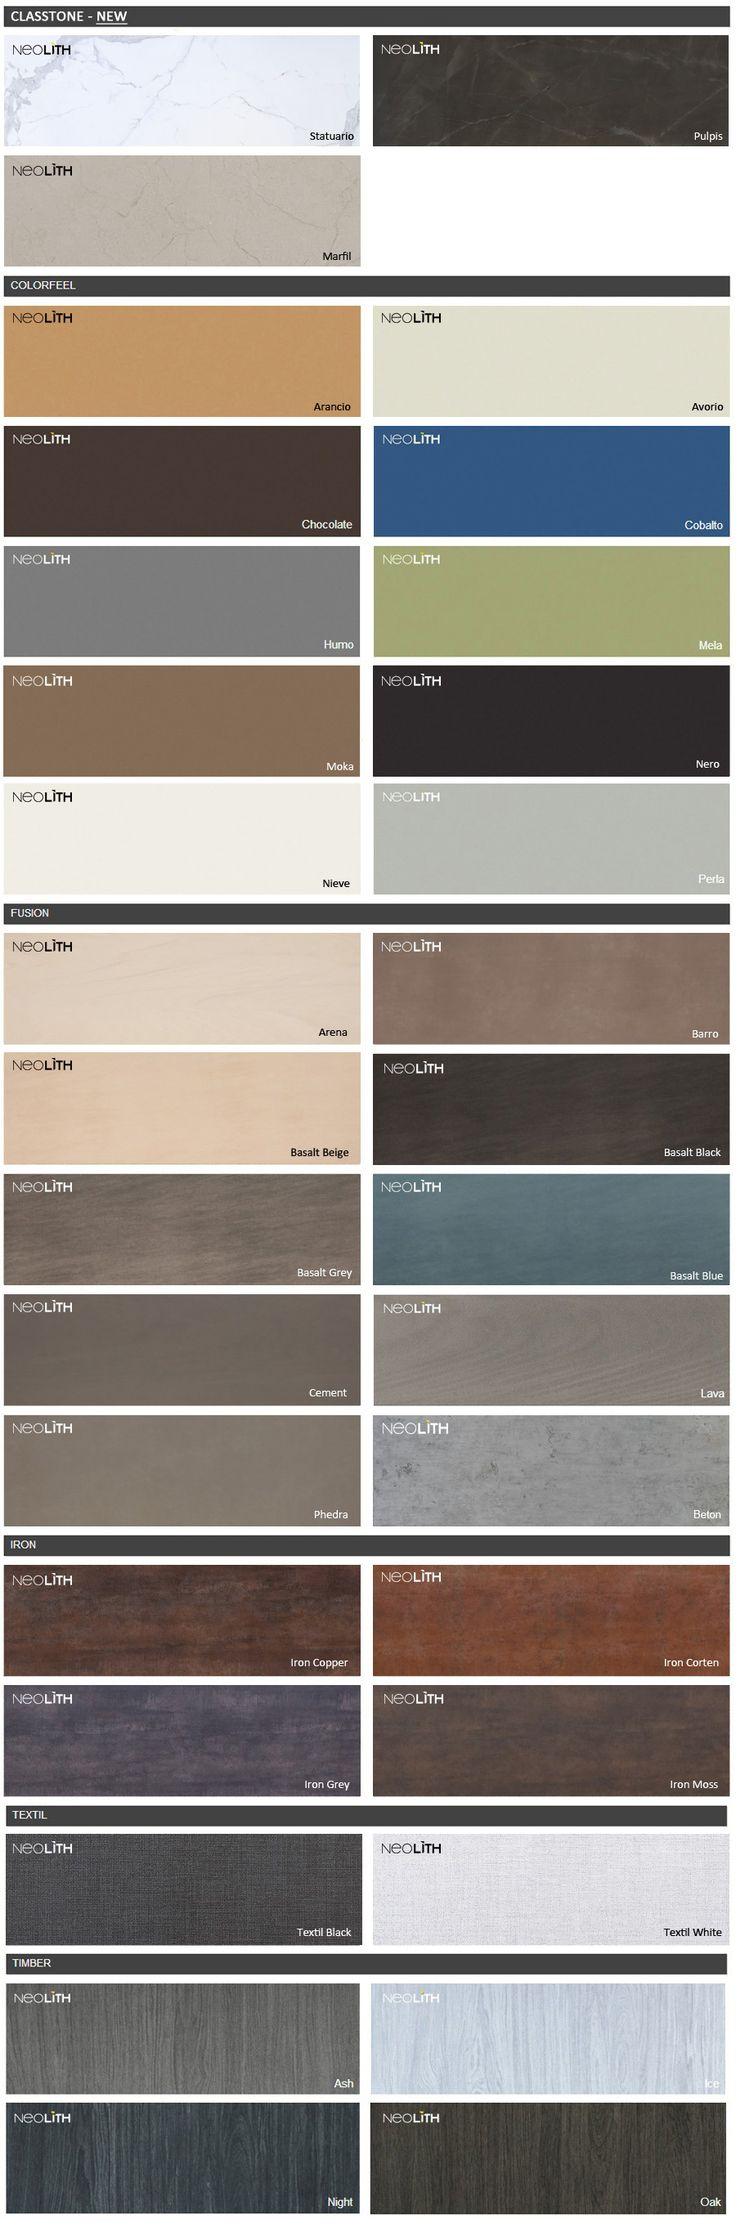 neolith-colors-with-in-stock-tags-6-28-14